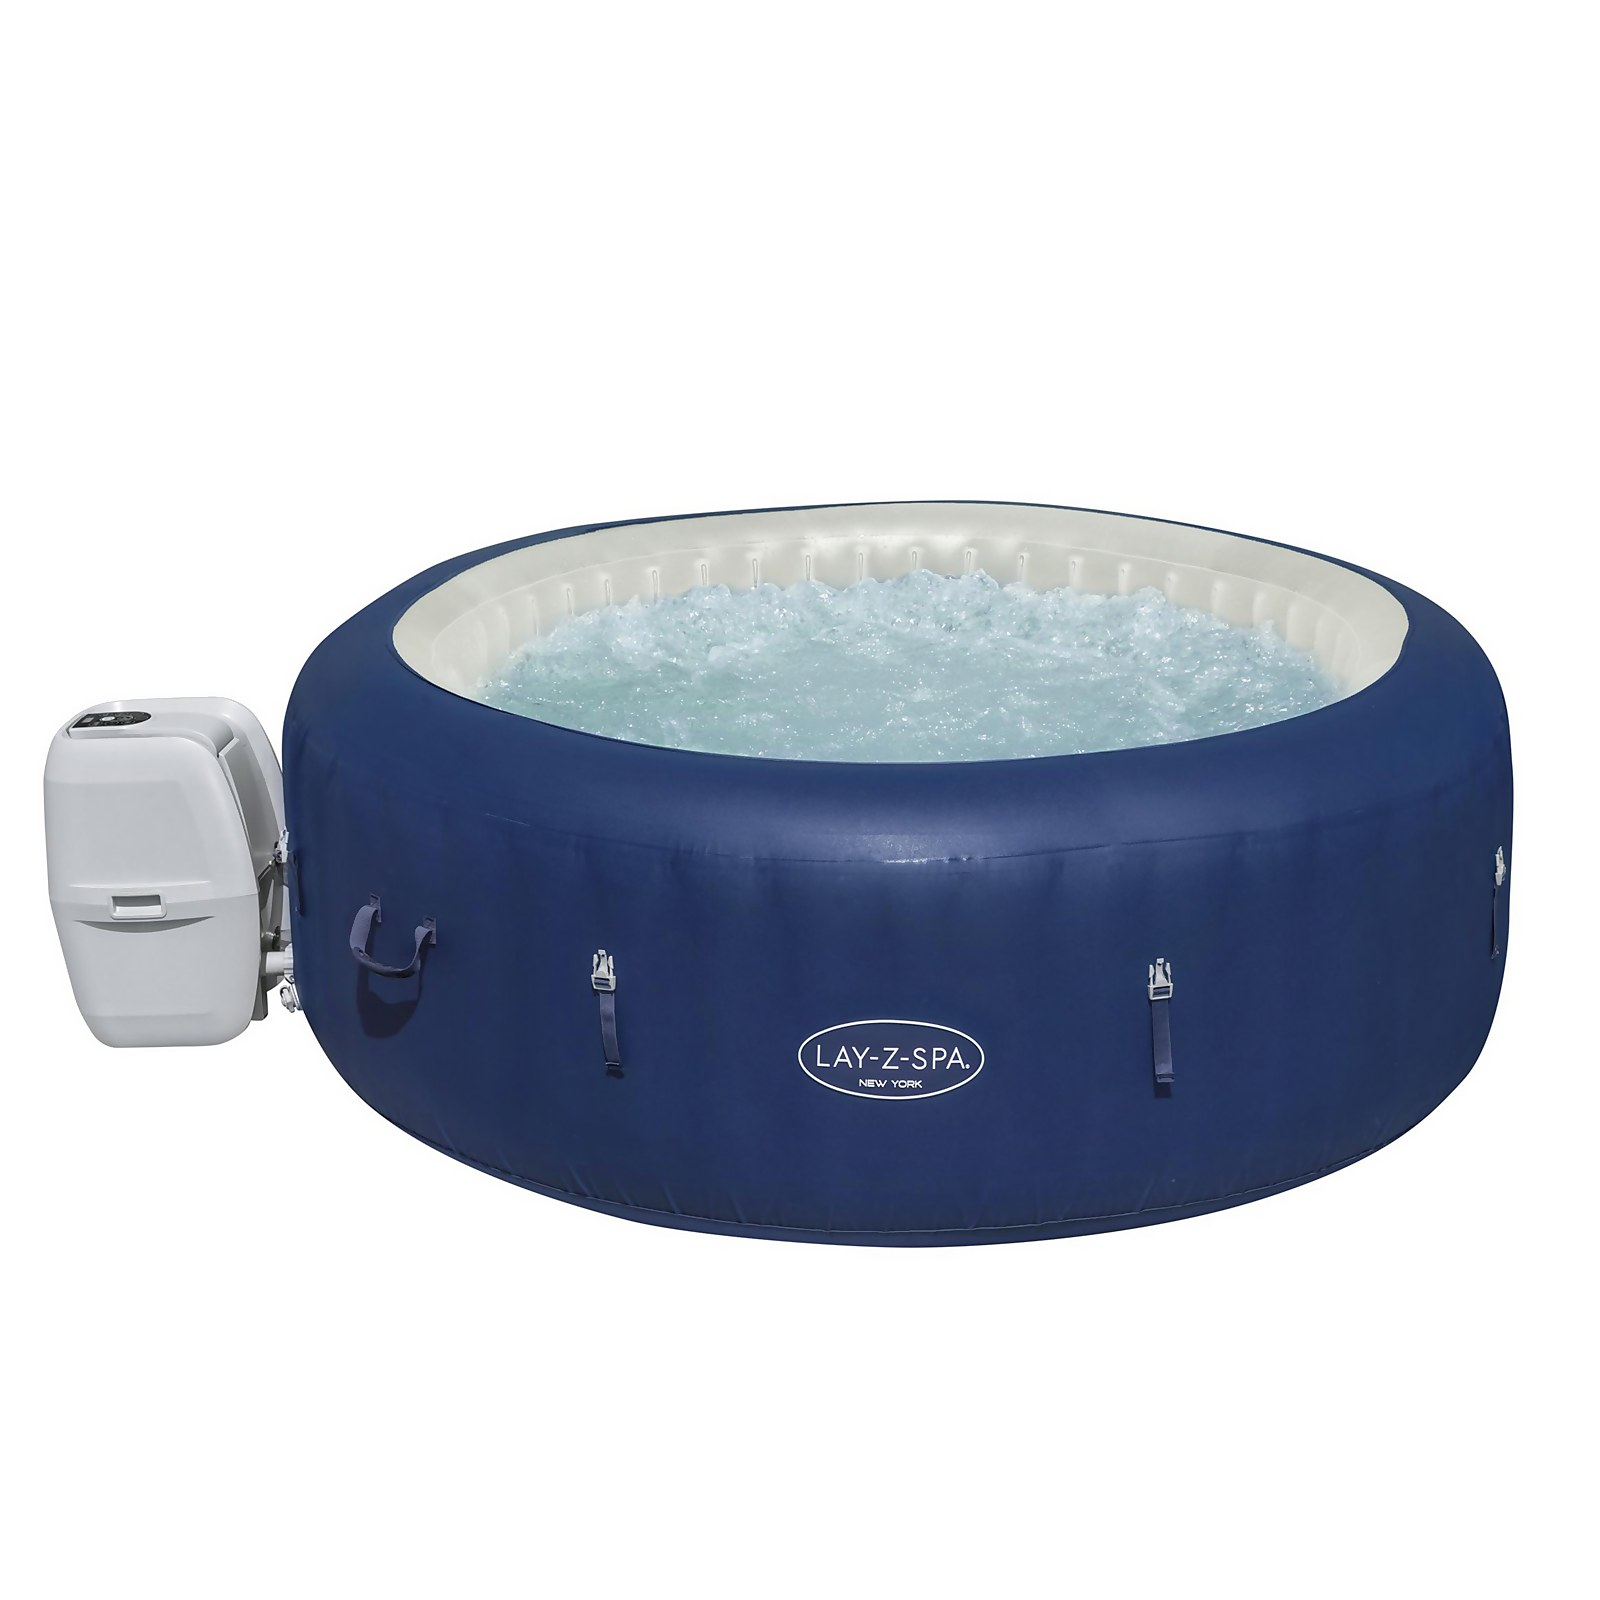 New York Lay-Z-Spa Airjet 4-6 Person Hot Tub with FREE Cleaning Kit